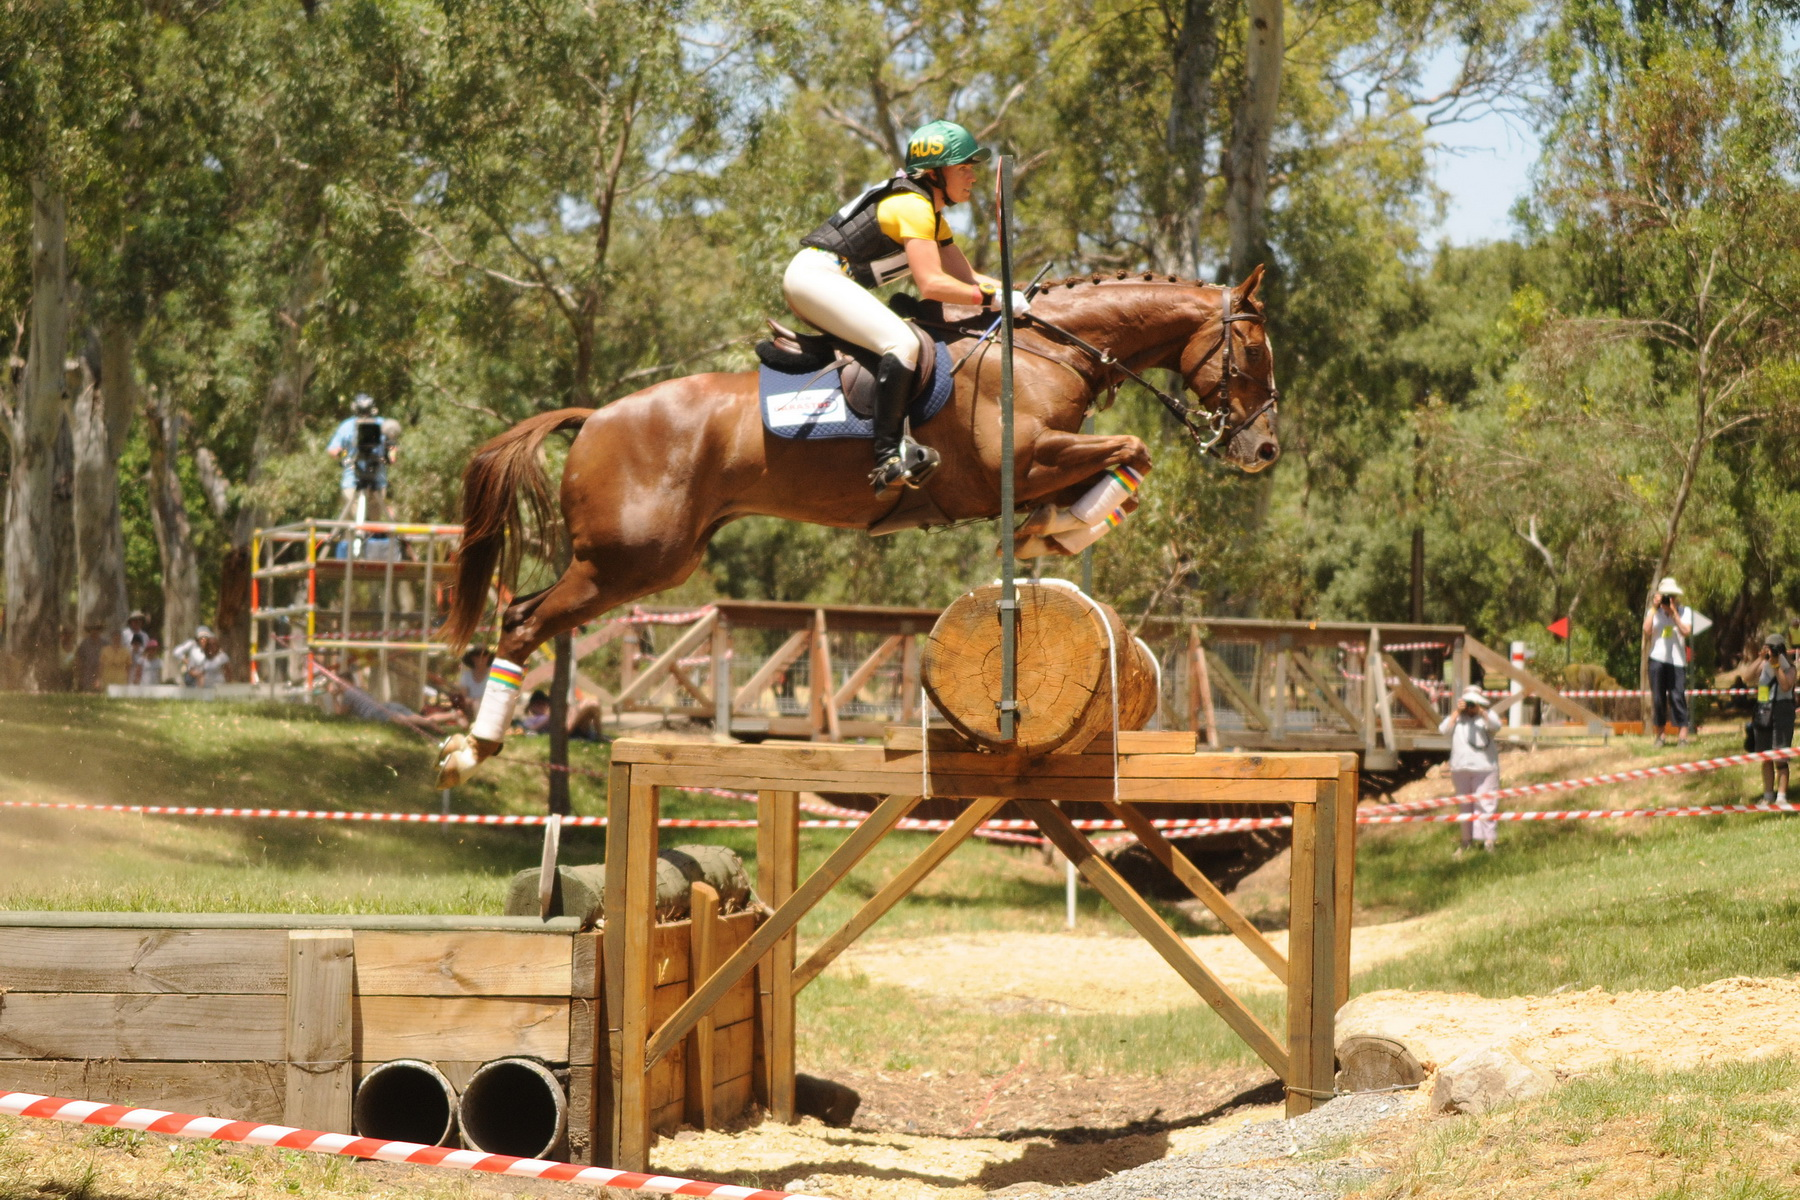 Adelaide adds colour to FEI Classics™